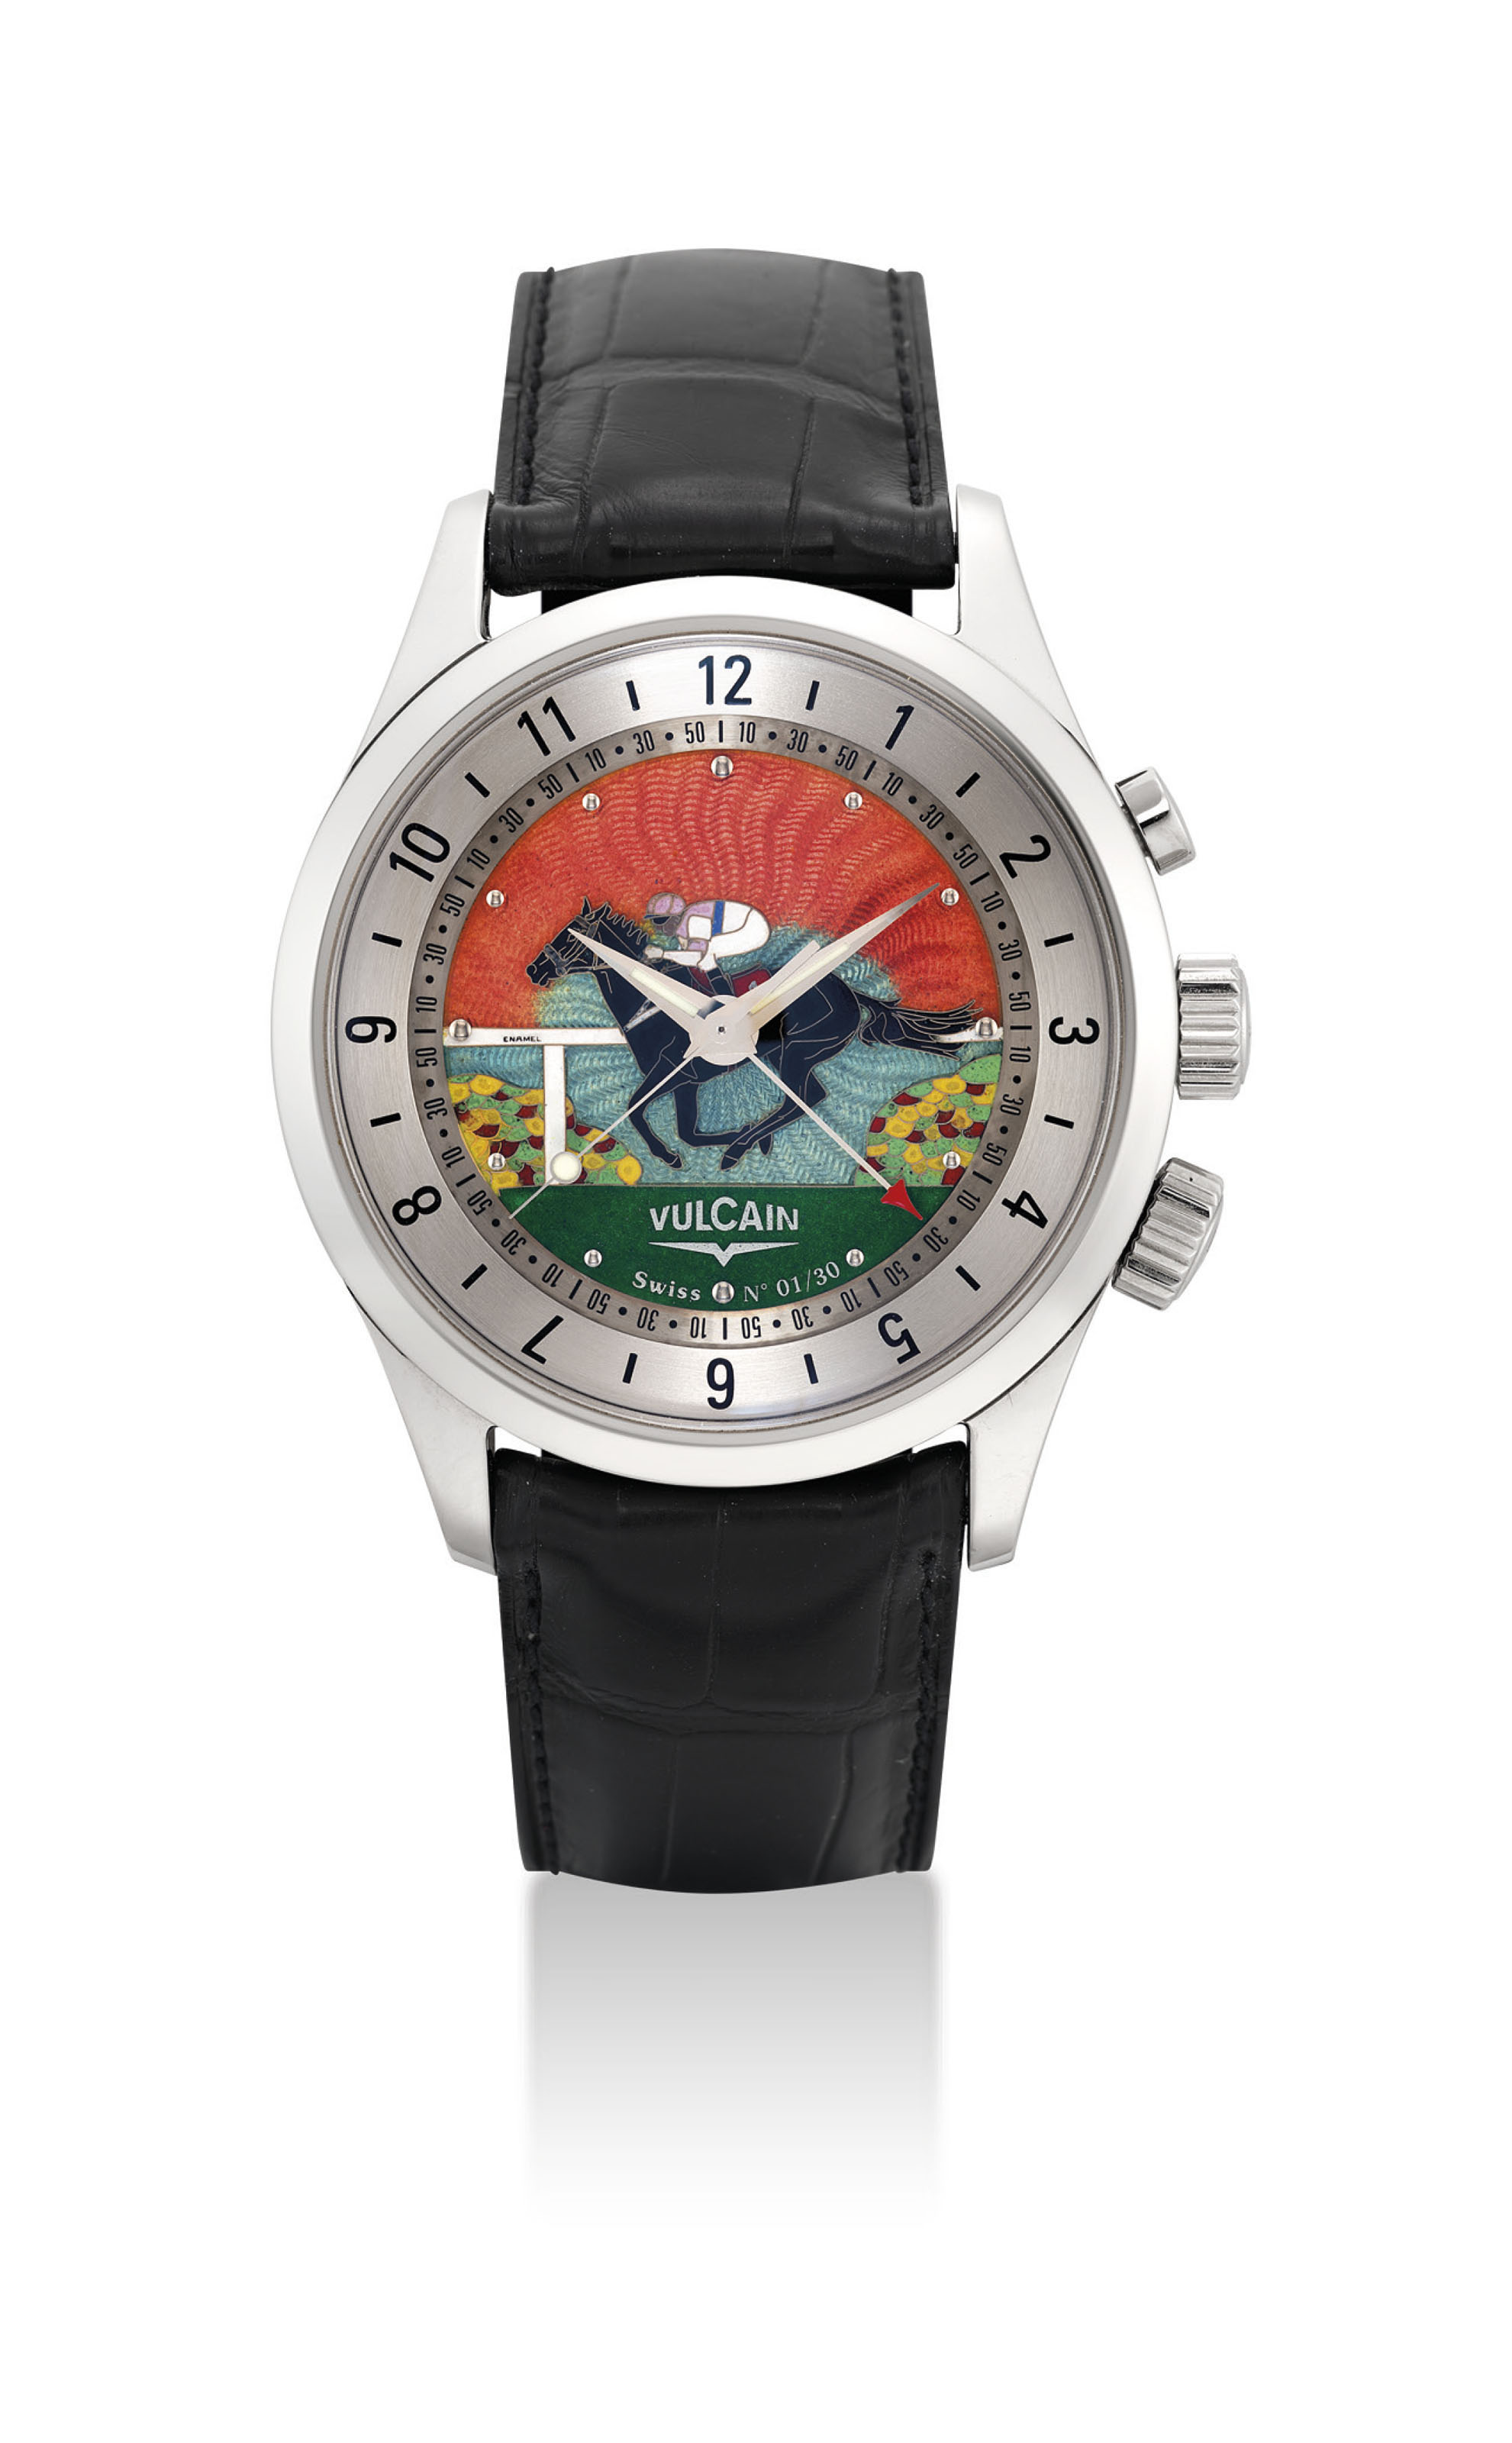 A. LANGE & SÖHNE. A FINE AND RARE PLATINUM LIMITED EDITION AUTOMATIC WRISTWATCH WITH ENAMEL DIAL, MADE TO COMMEMORATE THE MILLENIUM